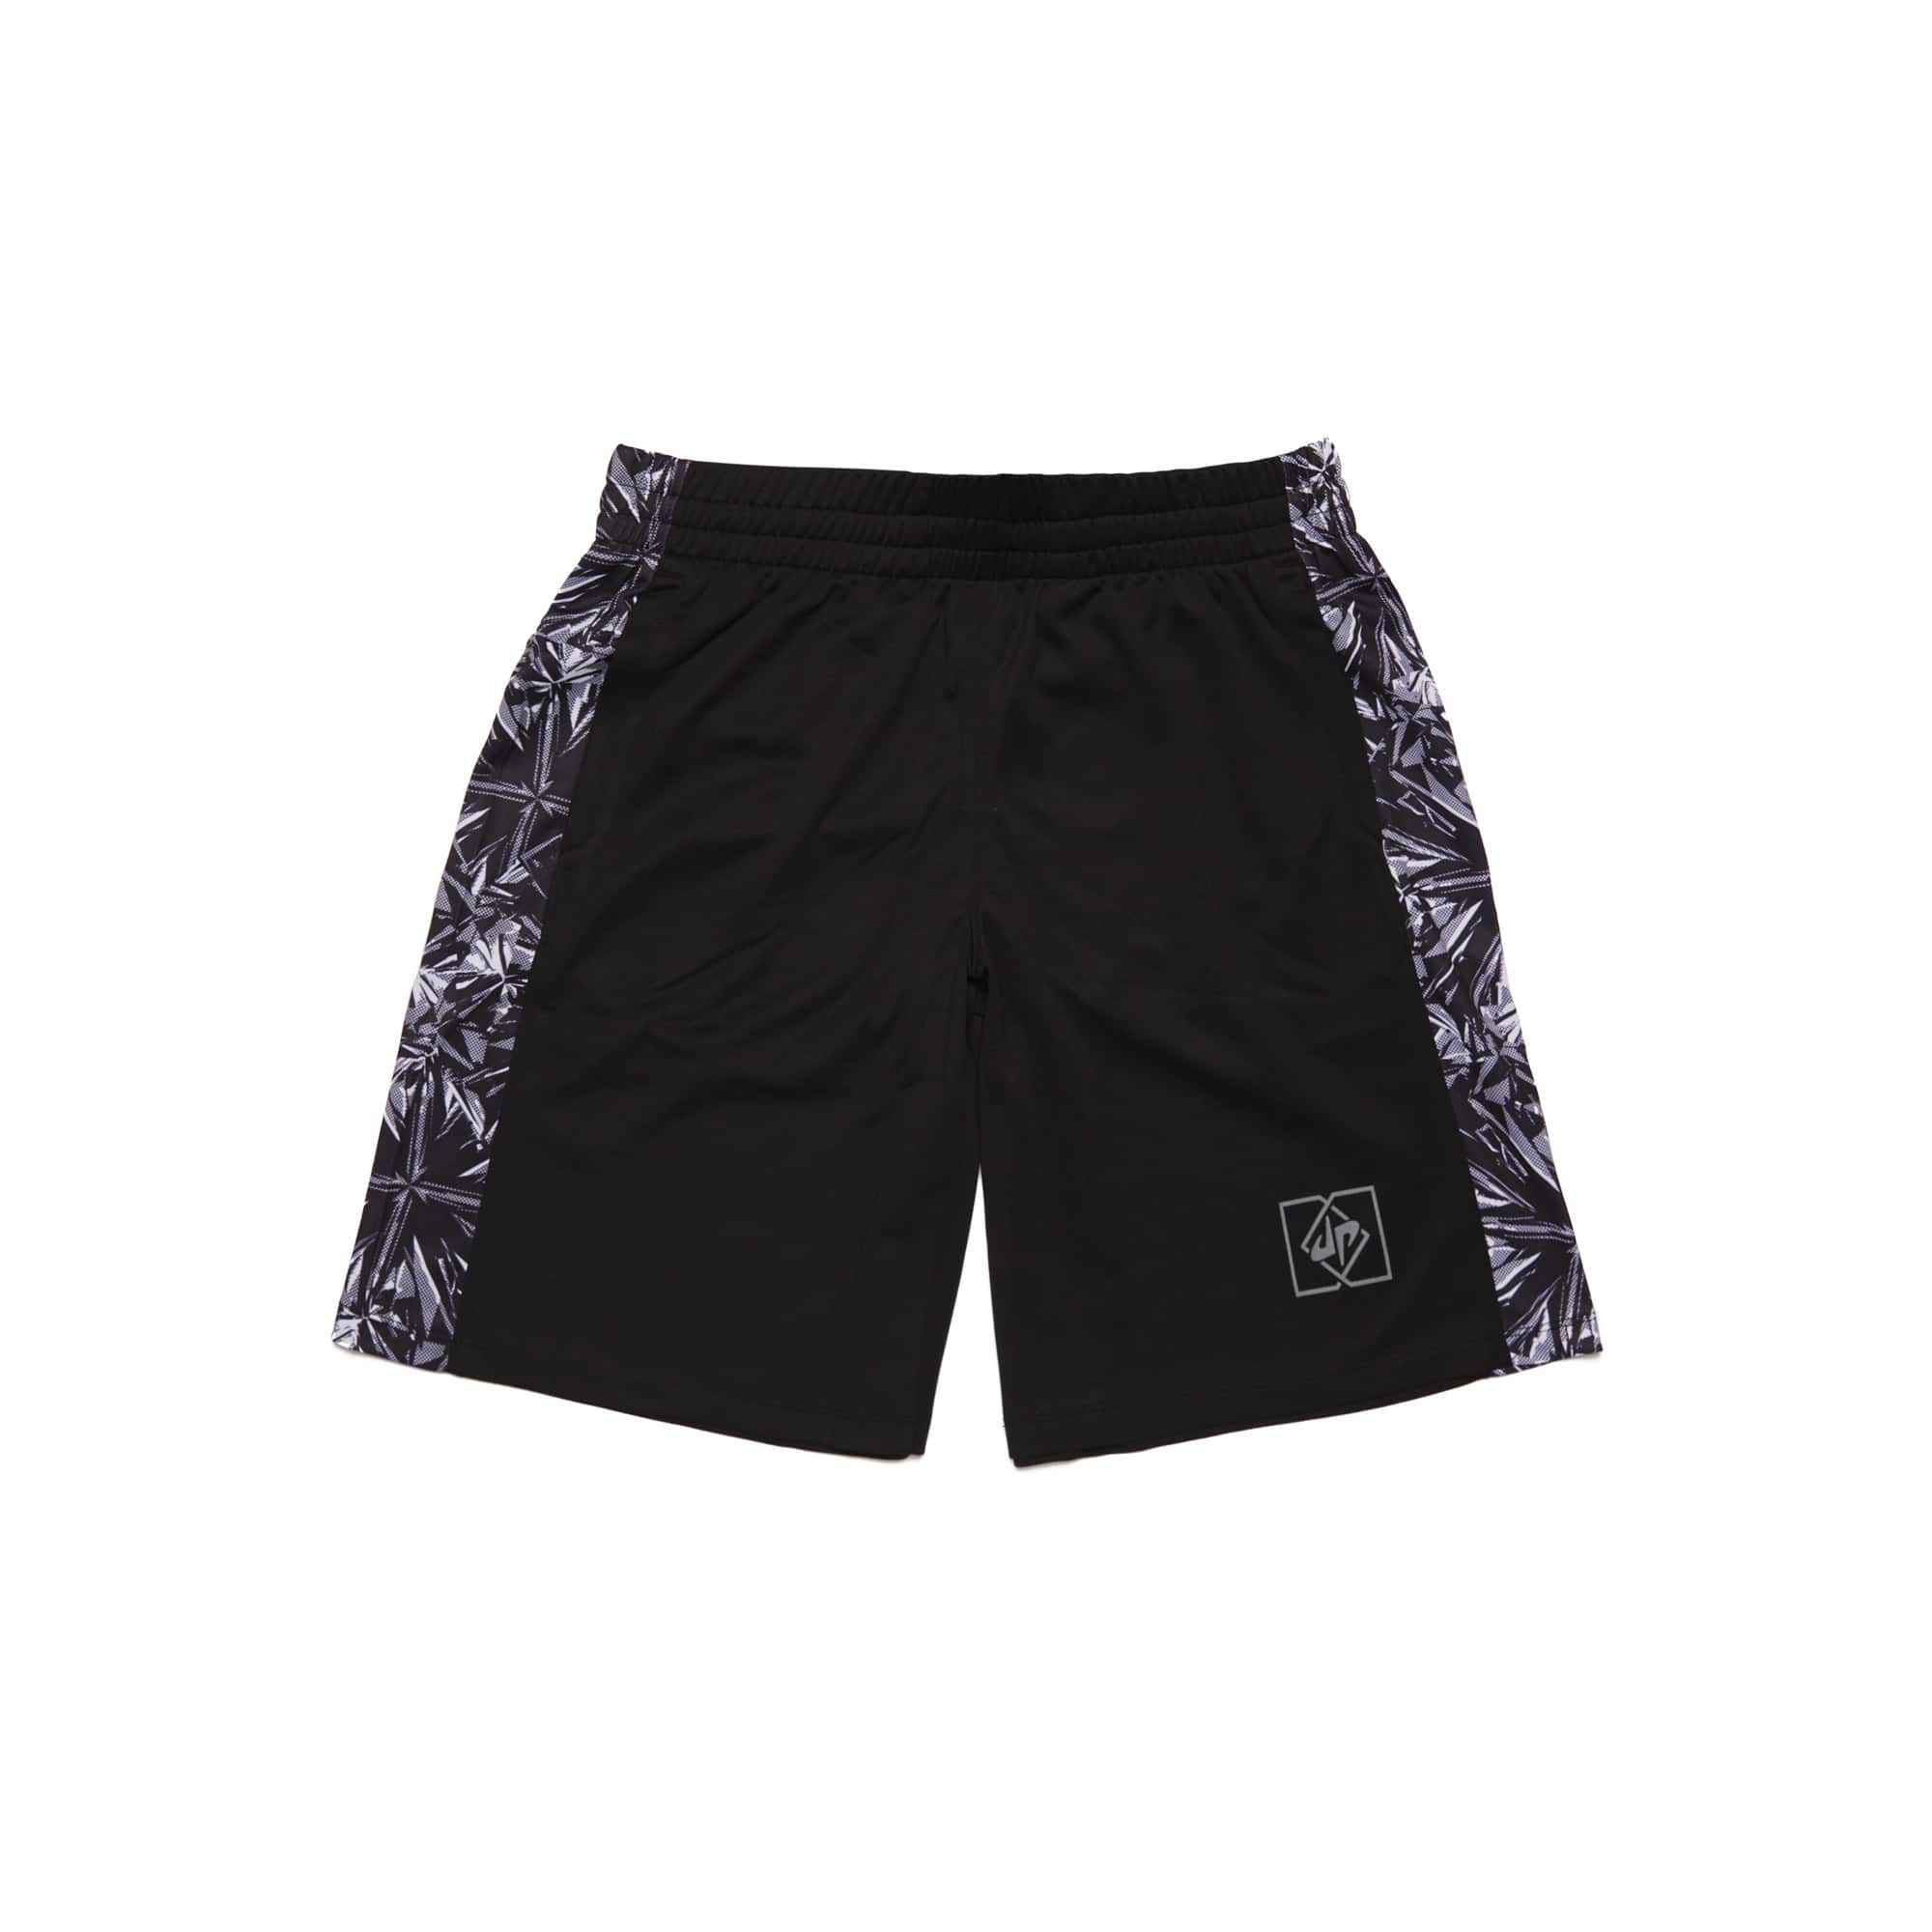 Crushing Diamonds Training Shorts